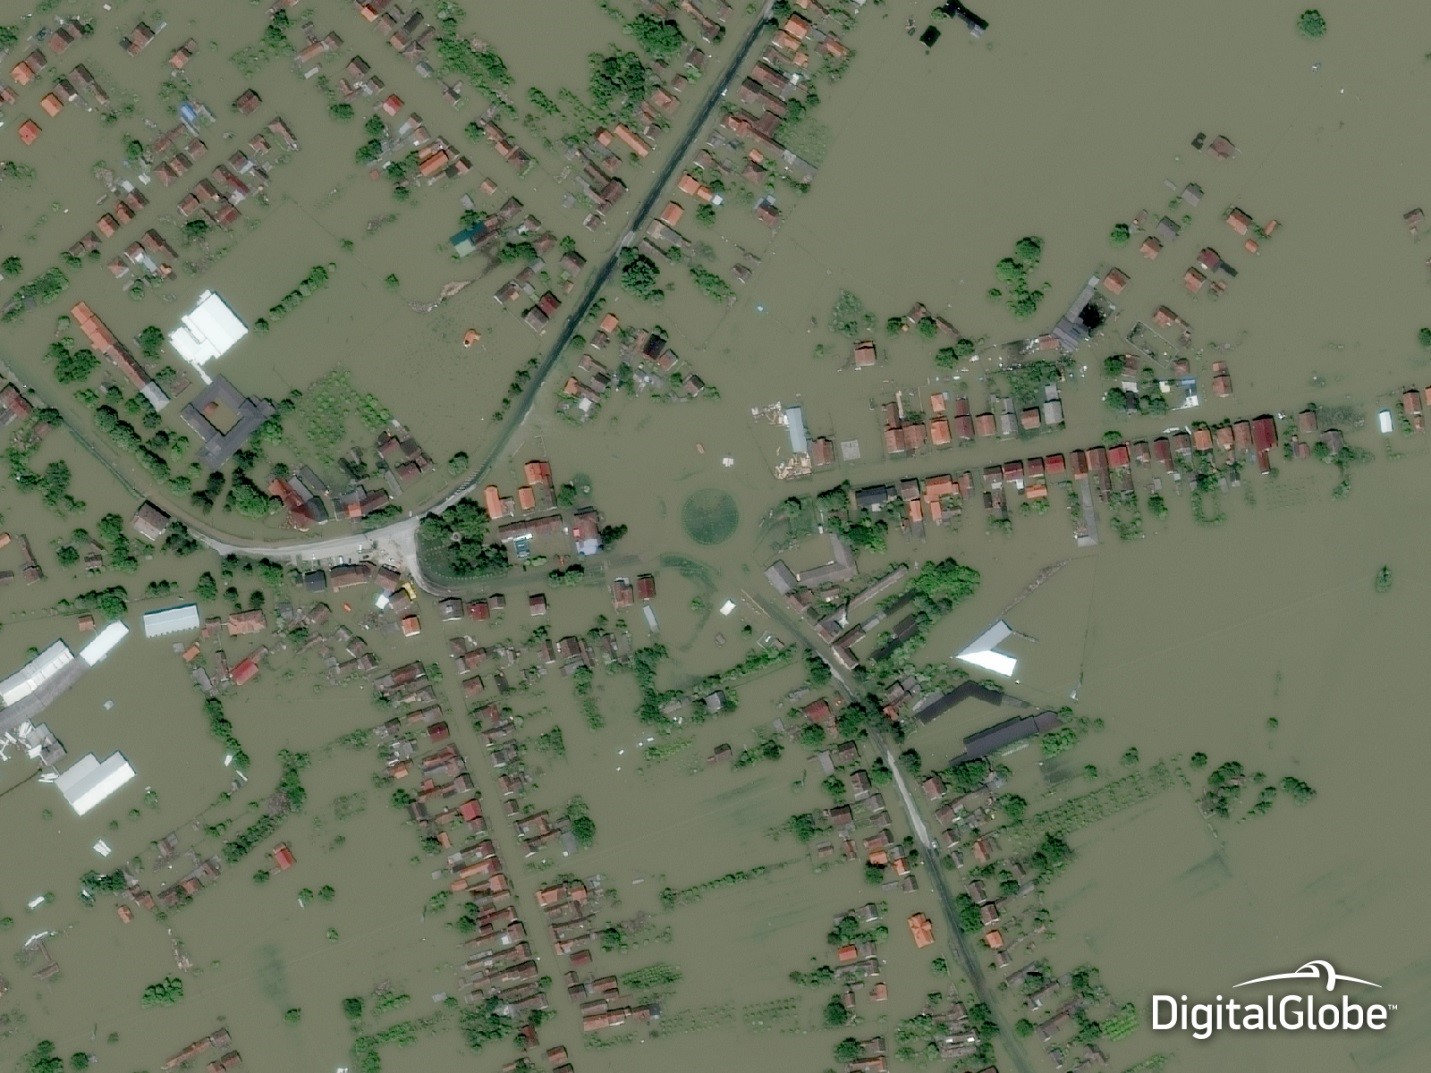 Geospatial technologies and high resolution satellite imagery can help better prepare, respond and adapt to climate change. This image from Gunja, Croatia was taken on May 21, 2014 after three days of torrential rain that amounted to what is normally three months of rainfall.